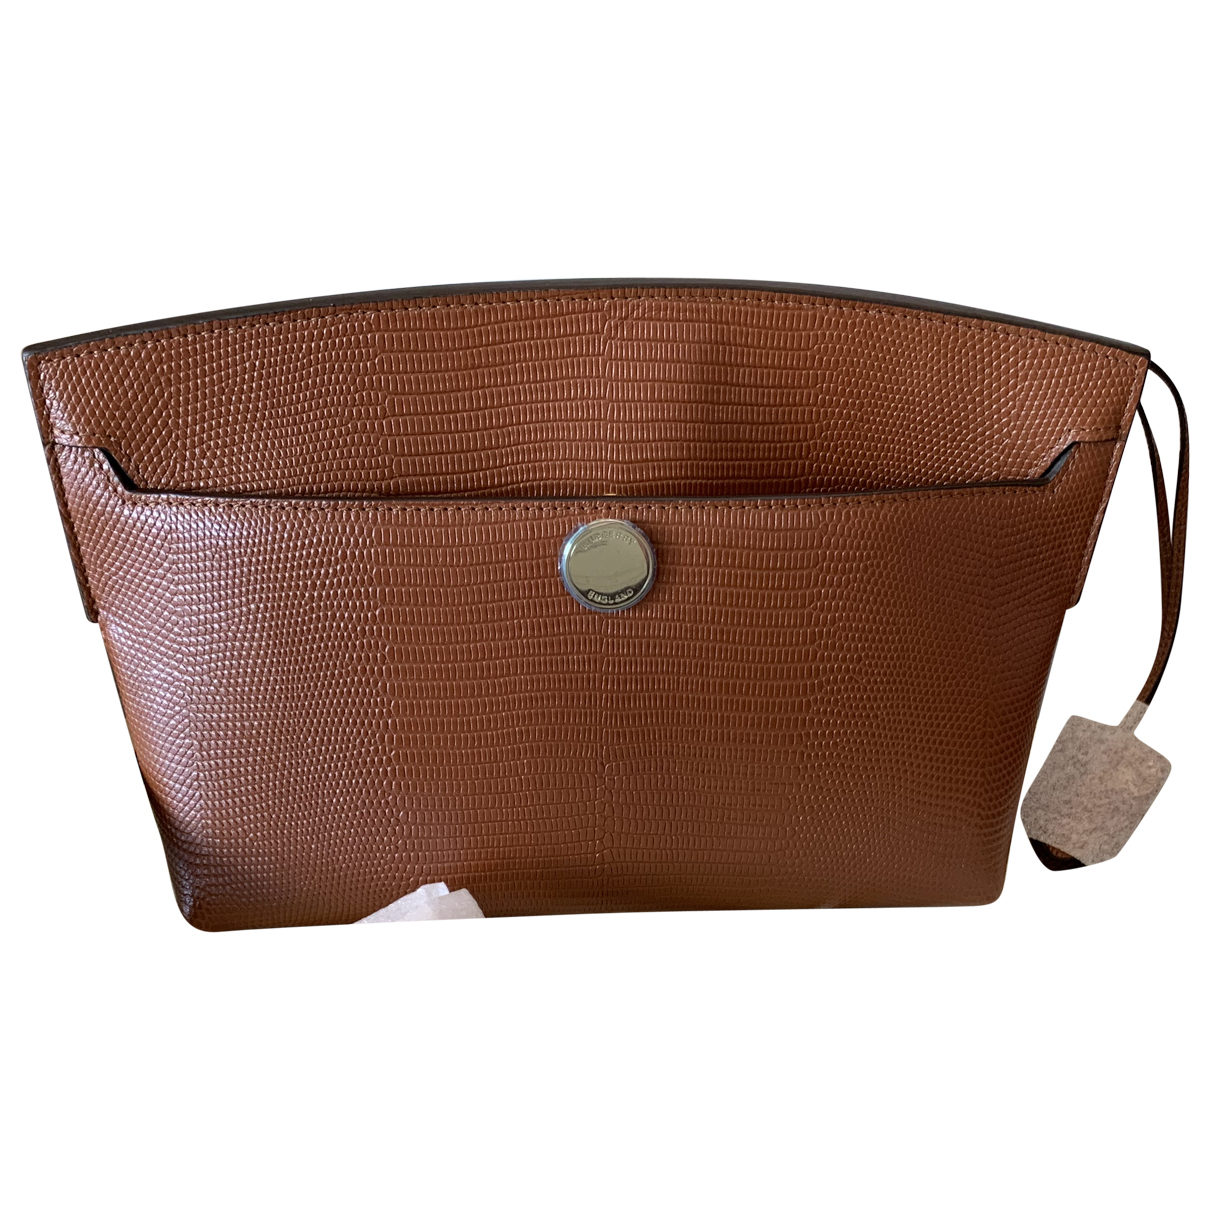 Burberry \N Brown Leather Clutch bag for Women \N